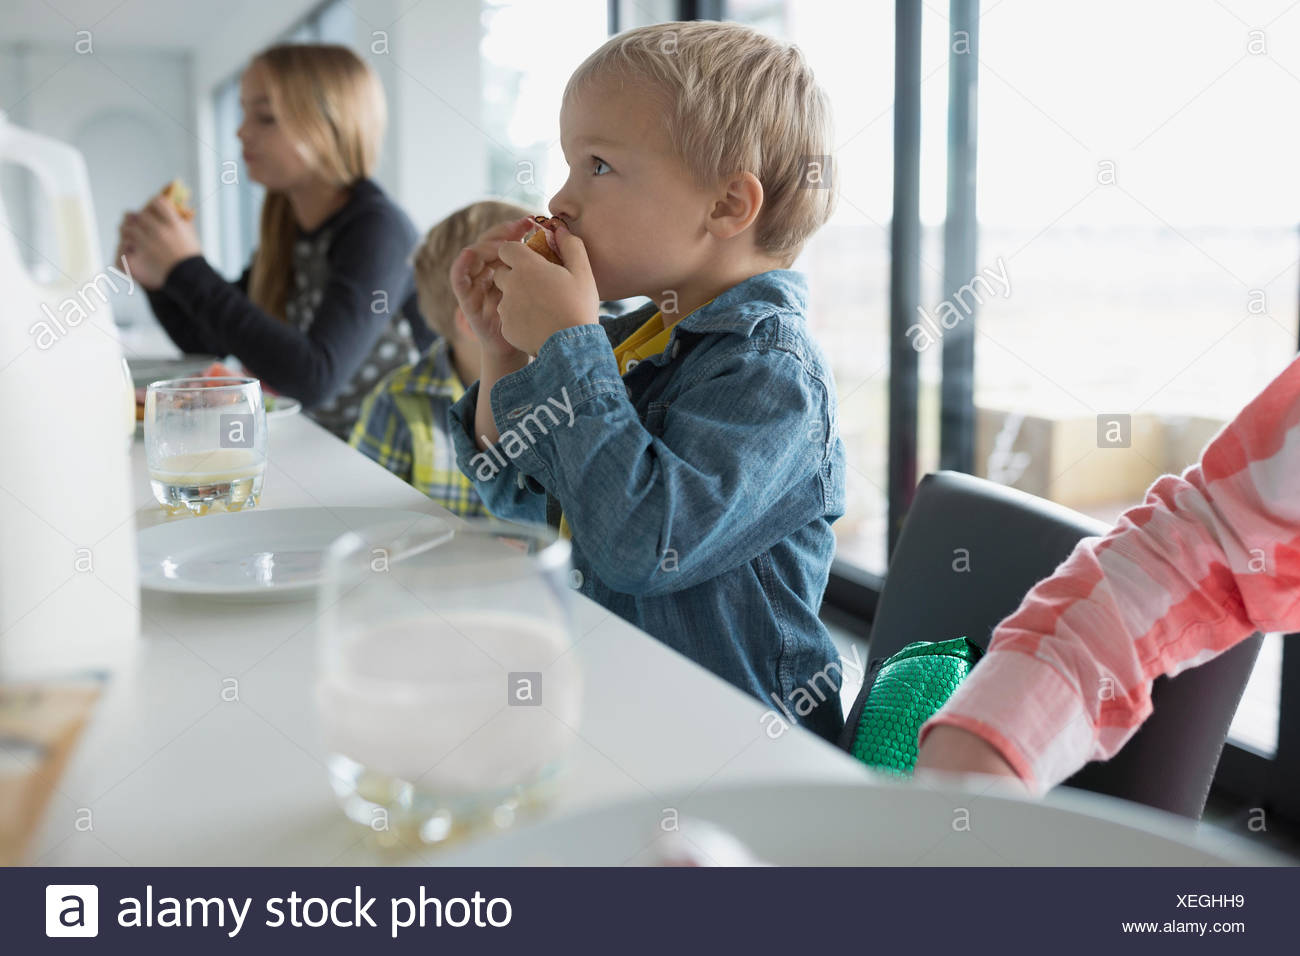 Family eating at kitchen island - Stock Image